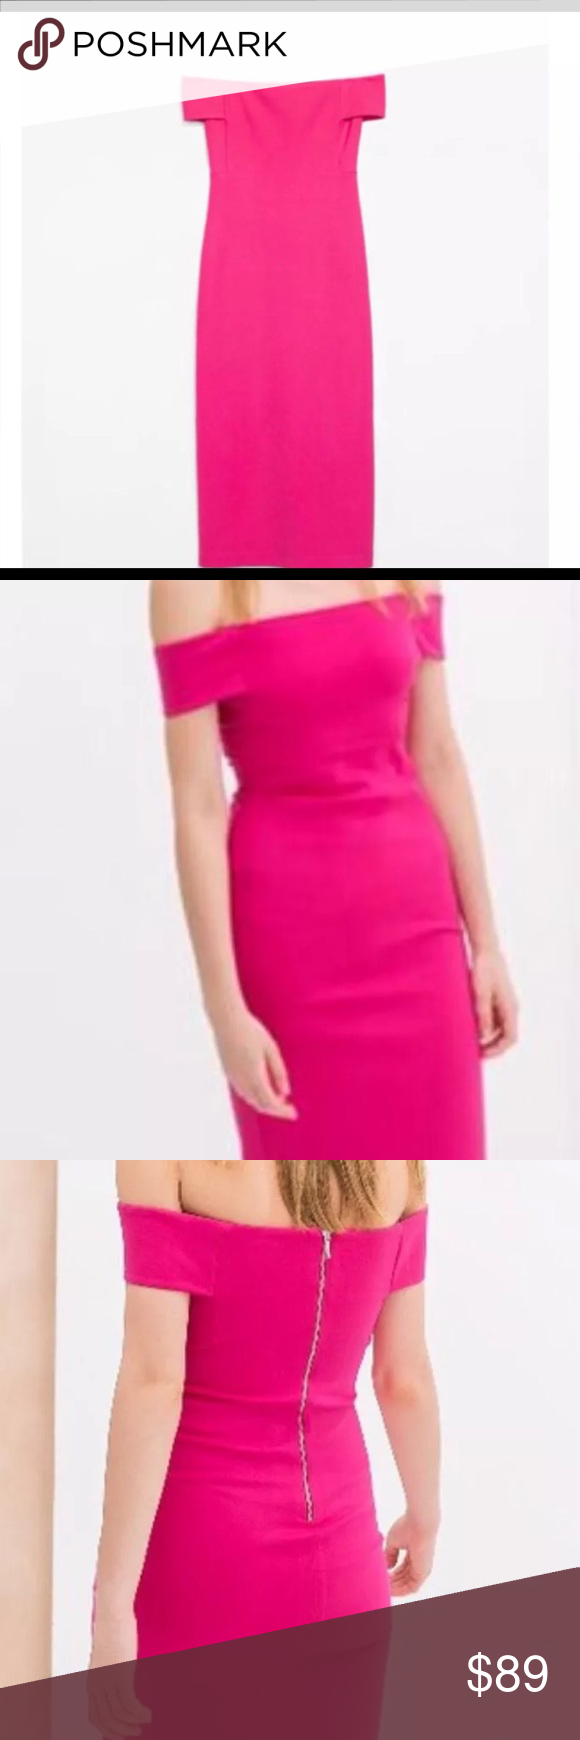 7d64d154 NWOT-zara hot pink off shoulder body con dress Brand new never worn (still  has plastic price that tag attaches to but no tag) hot pink off shoulder  body con ...